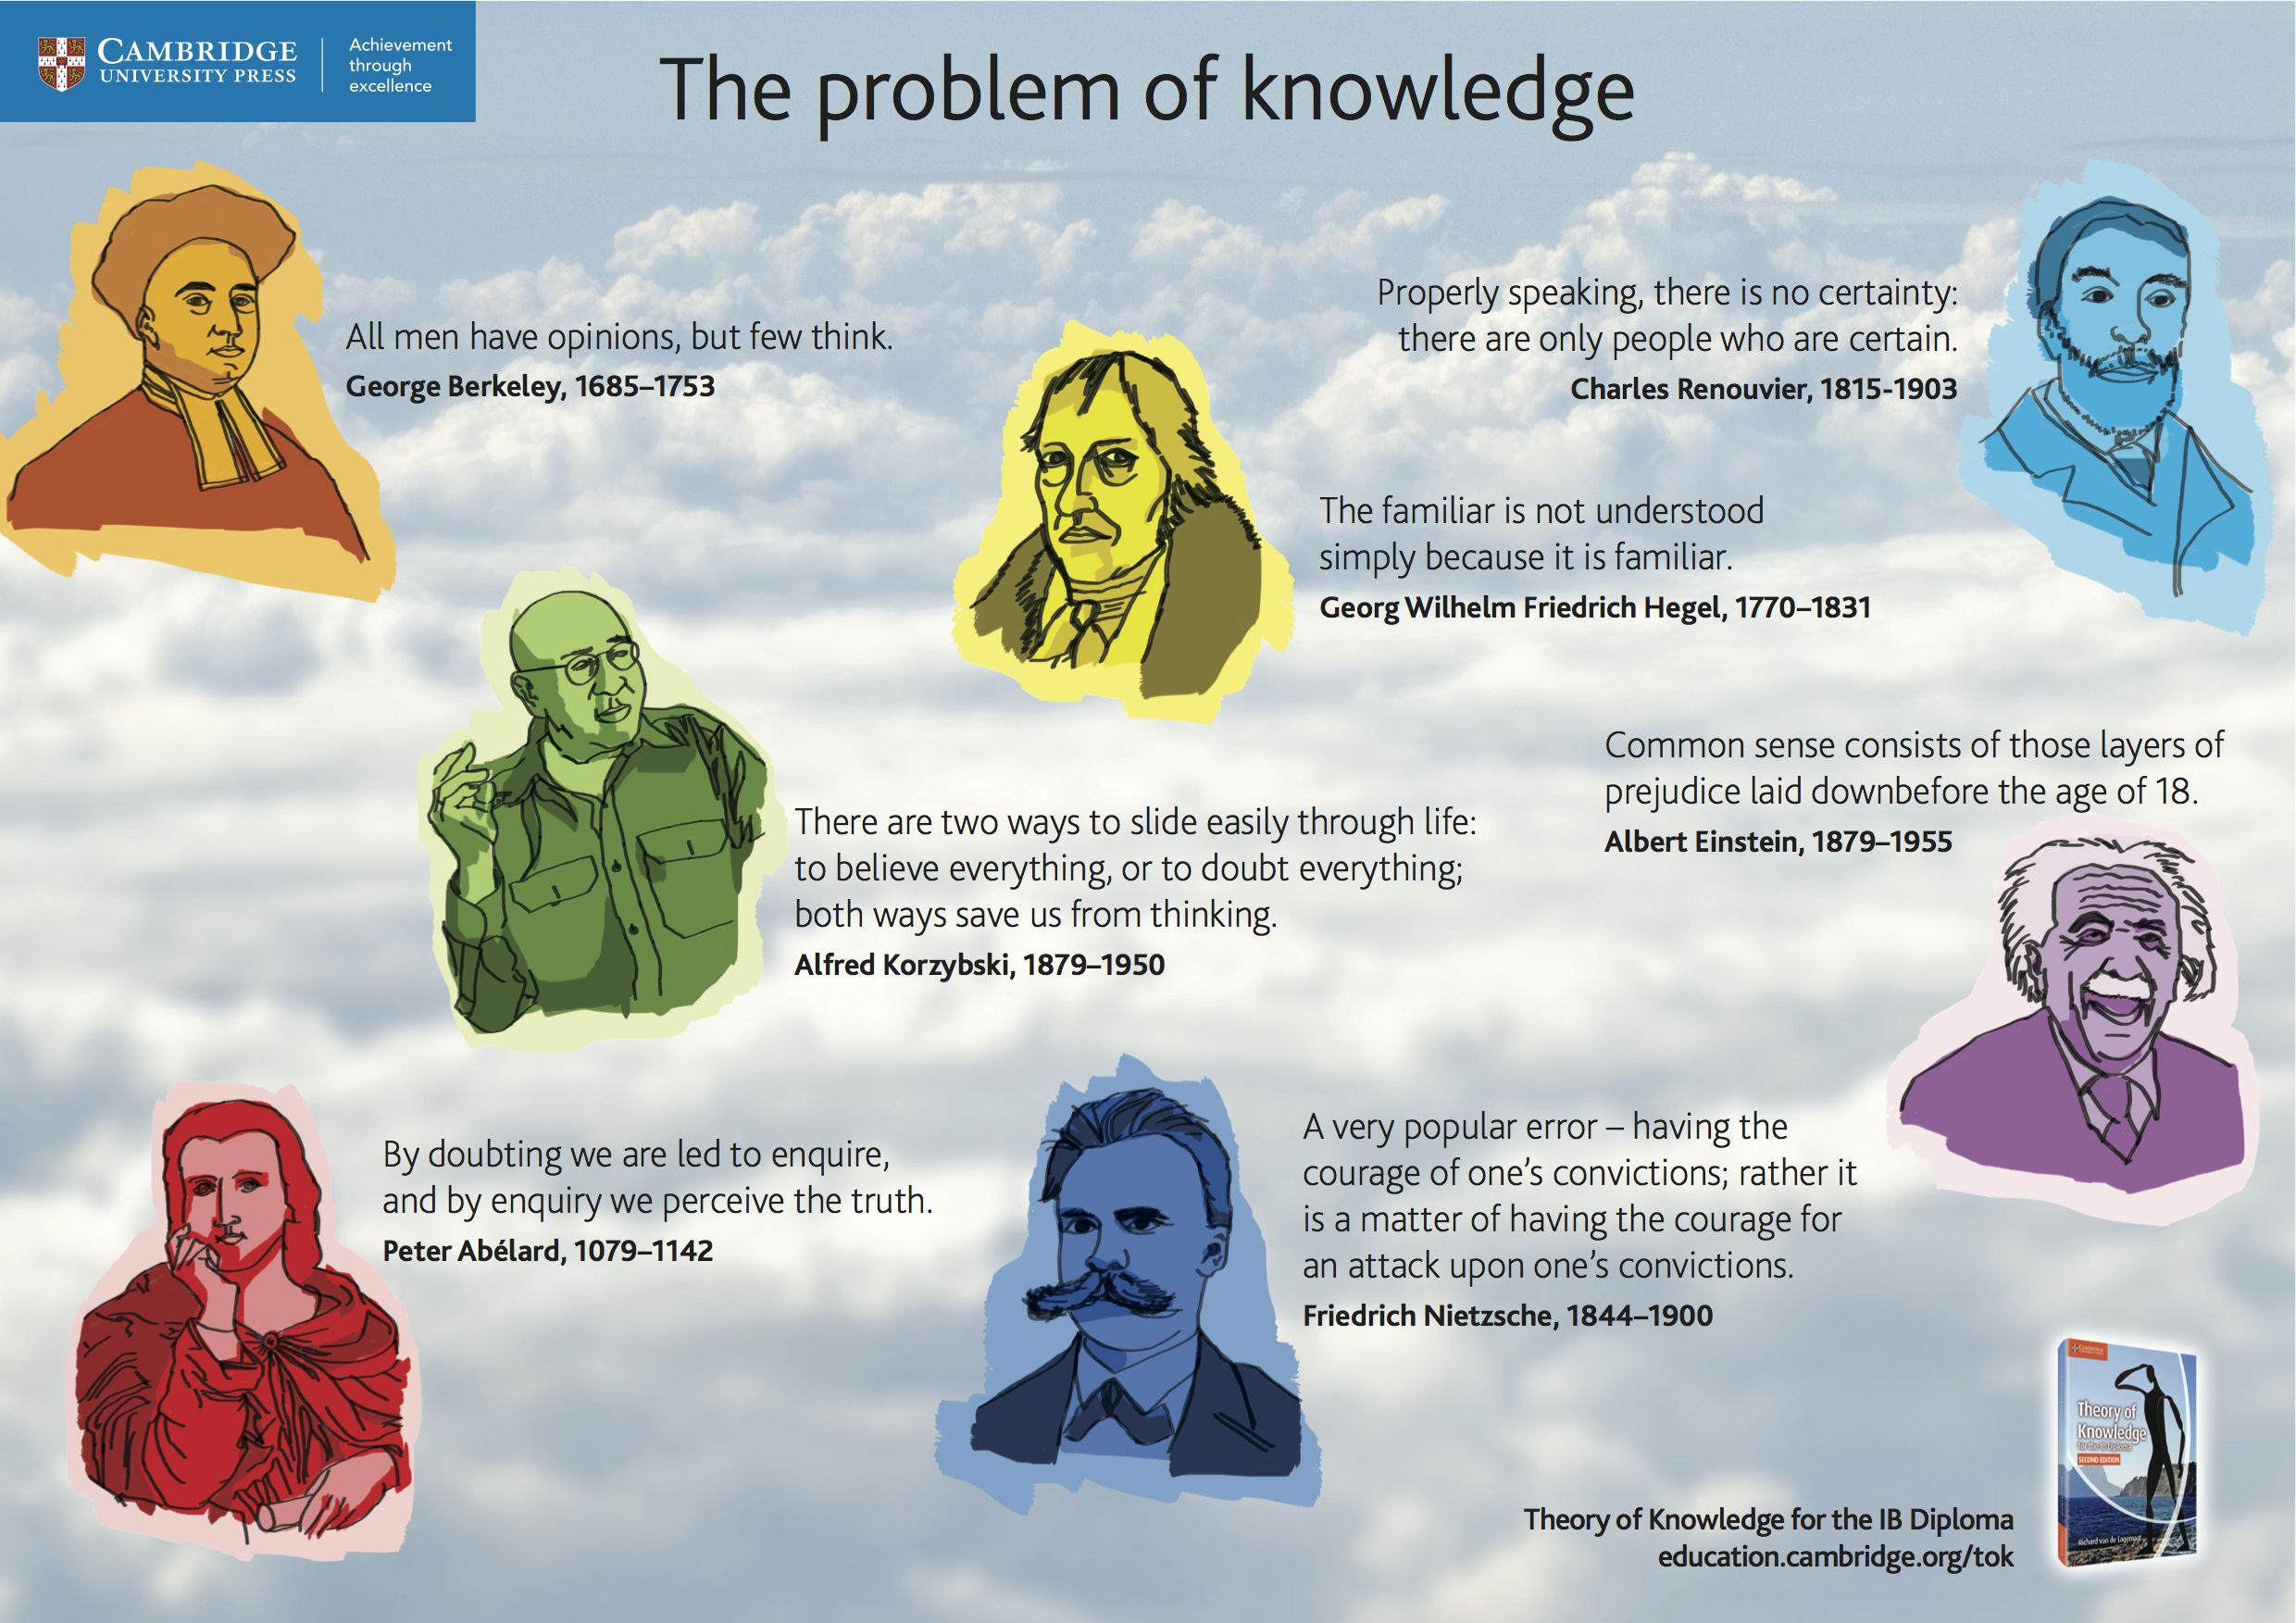 Learn about the problem of knowledge for your Theory of Knowledge for the IB Diploma studies in our Pin and Print poster for November. Click the image to download this free poster and print to A3 for use in your classroom #cambridgeclassroom #ibdp #theoryofknowledge #globaled